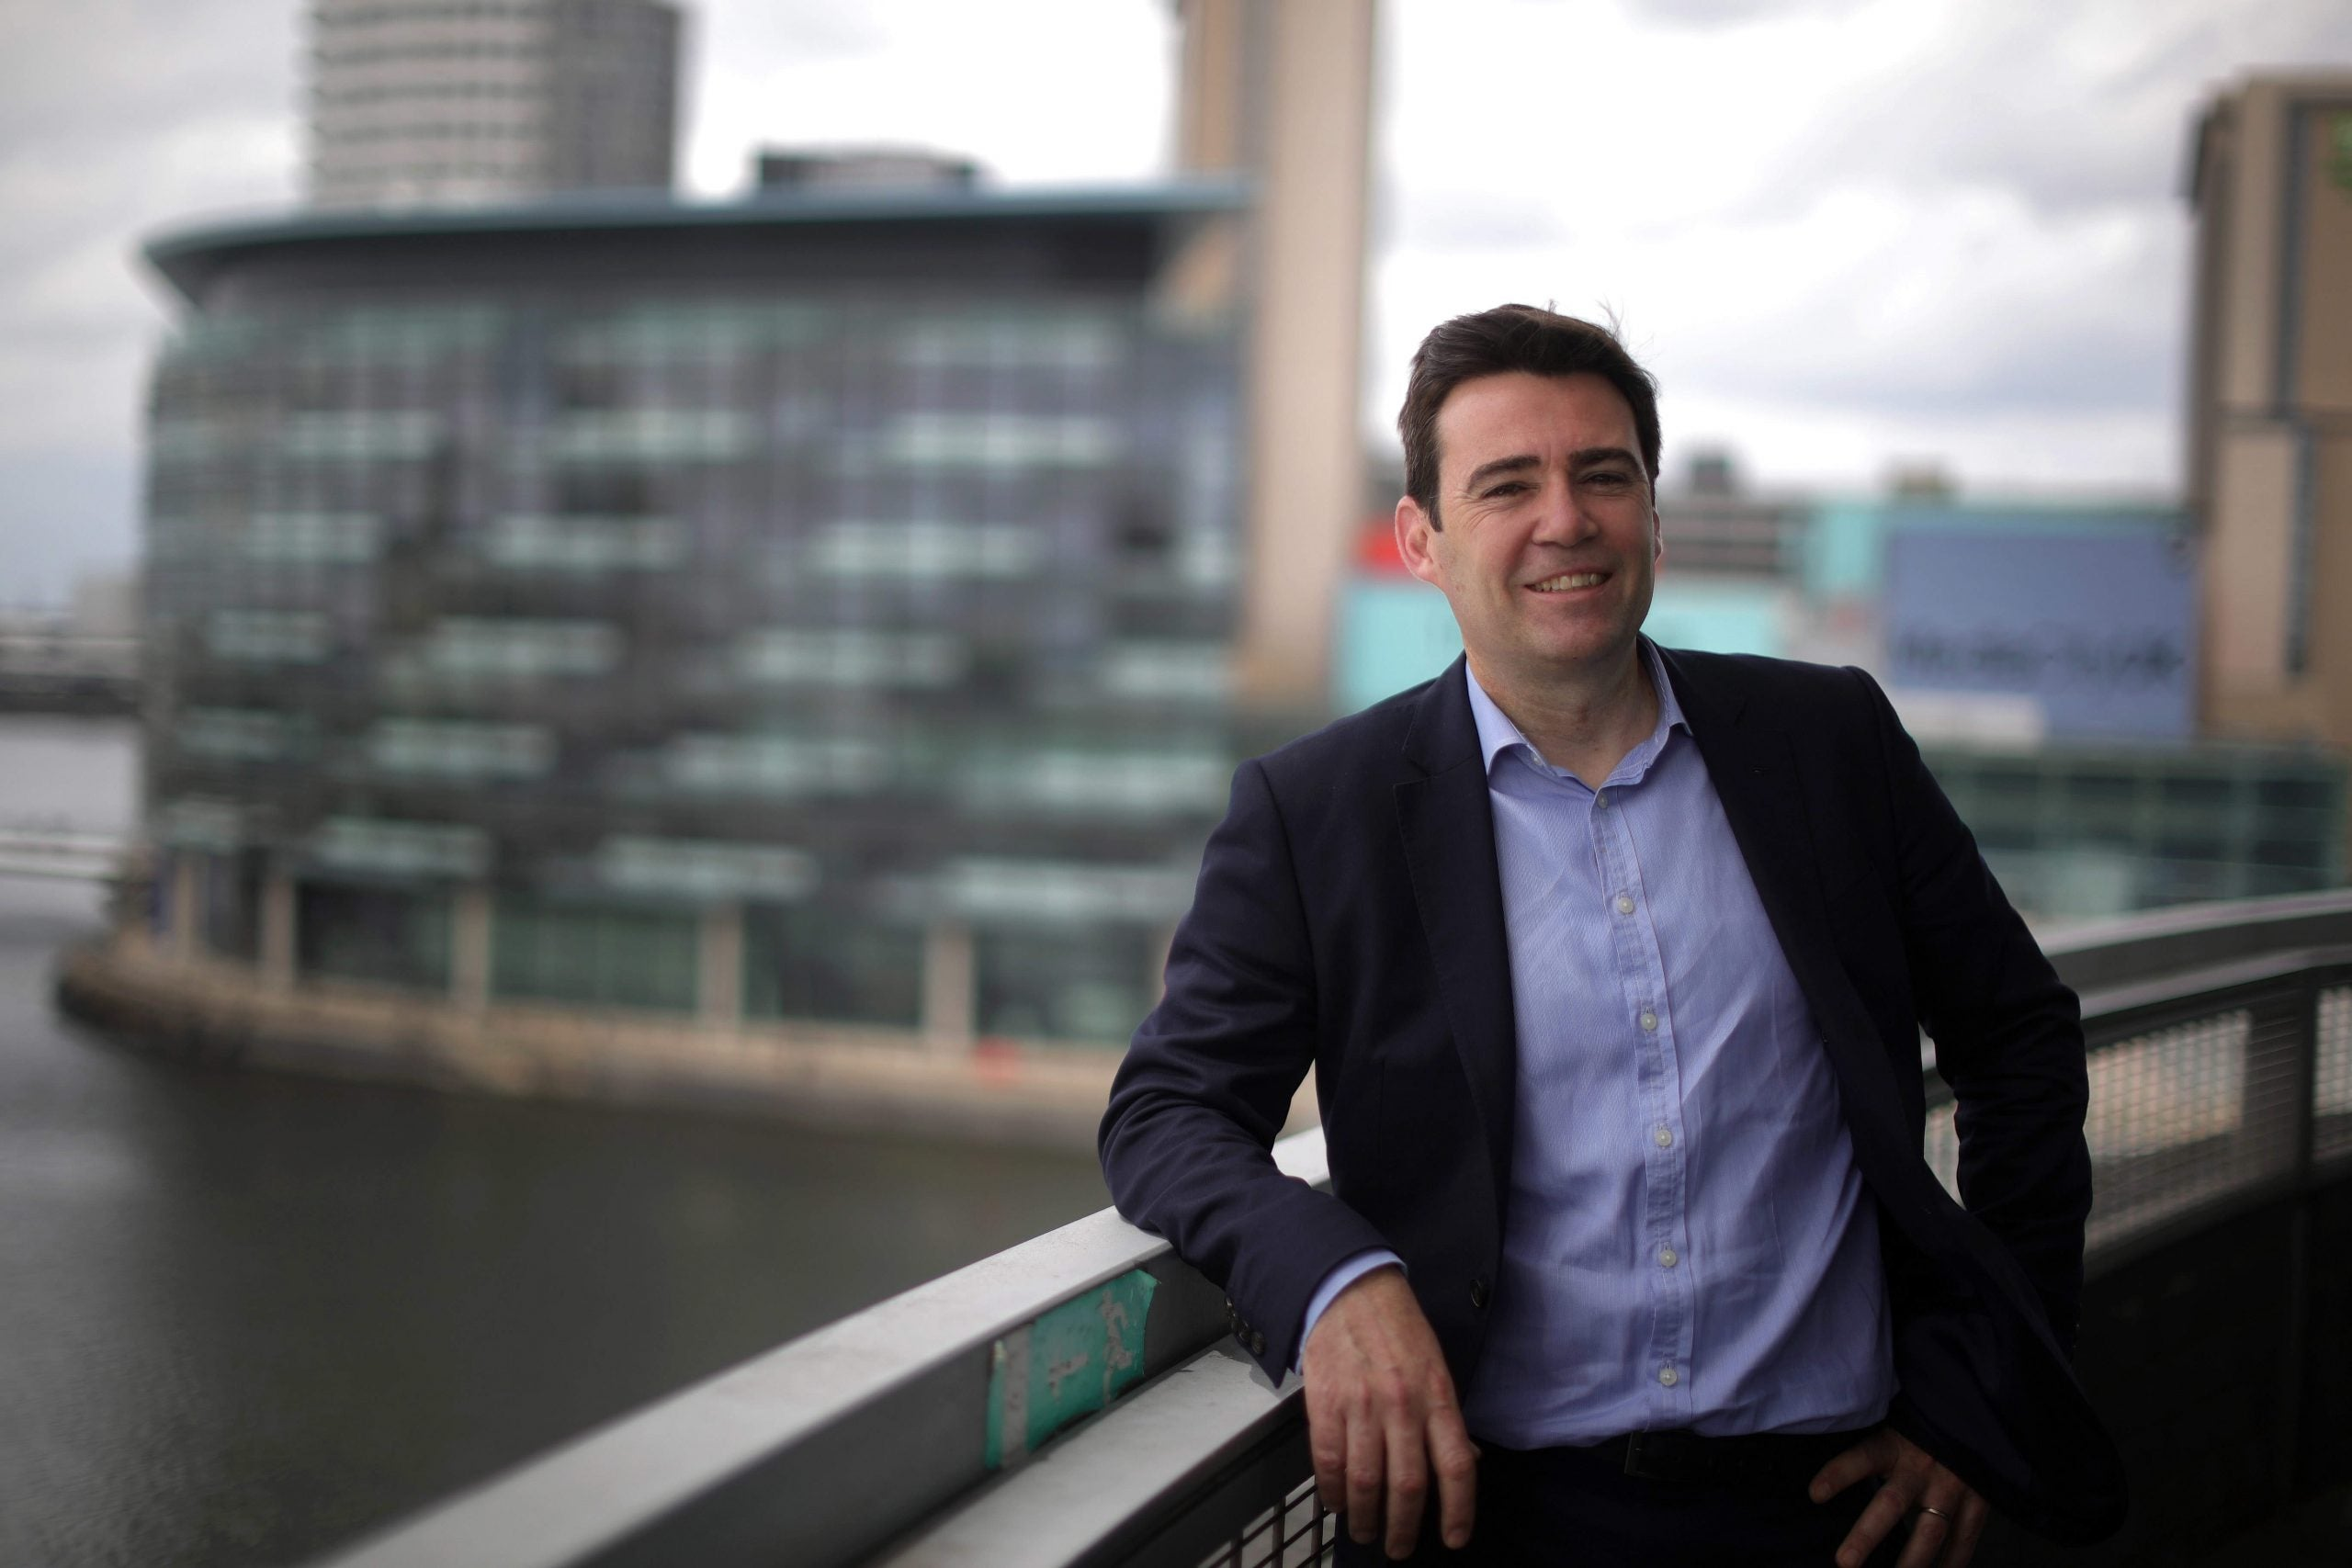 Andy Burnham has found the radical centre – and it could win him Greater Manchester